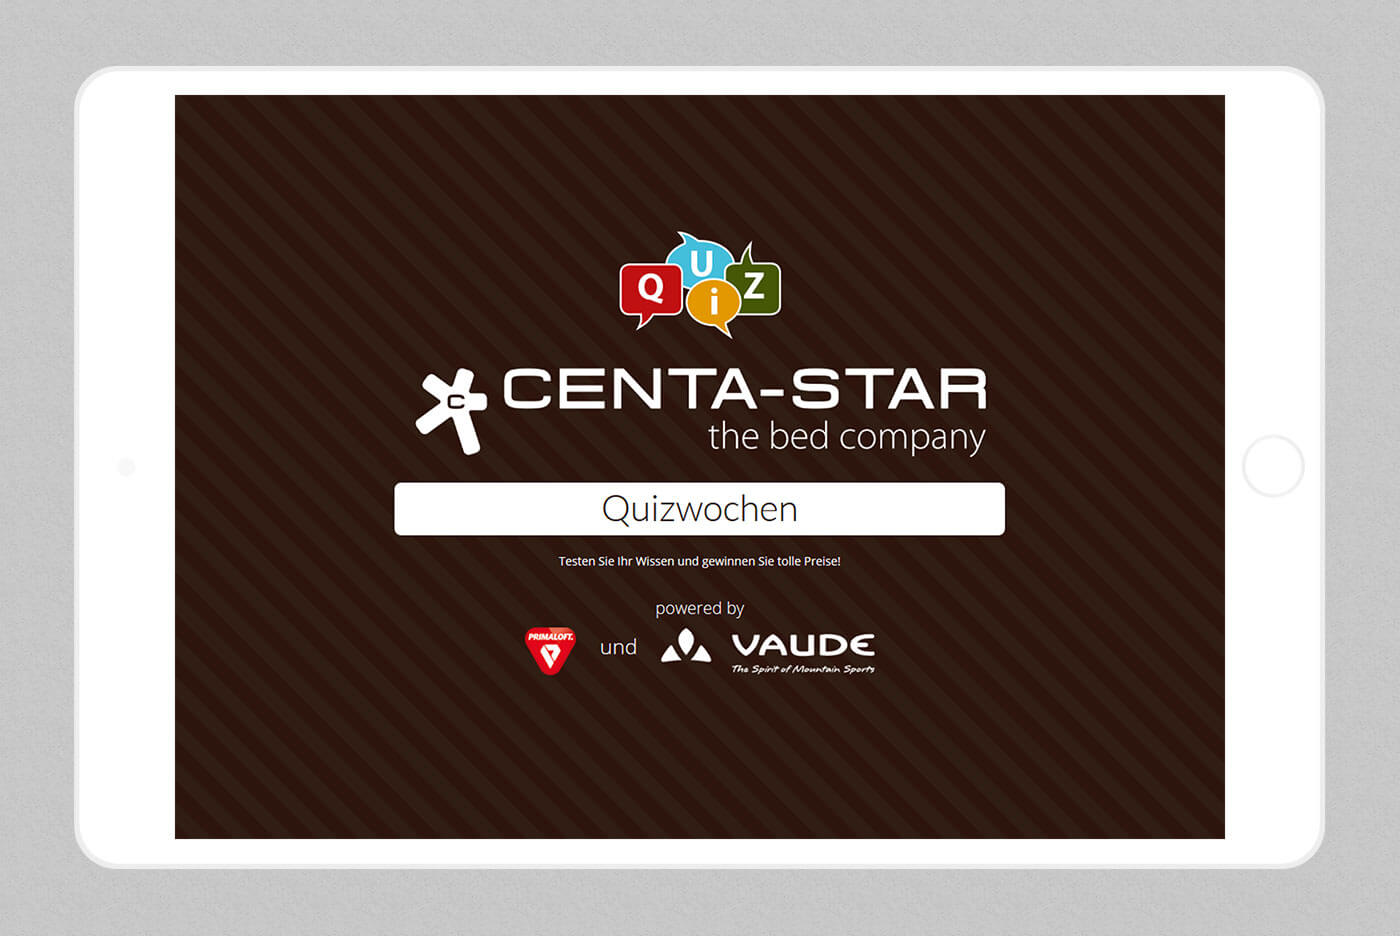 web designer stuttgart - dt media group - centa star